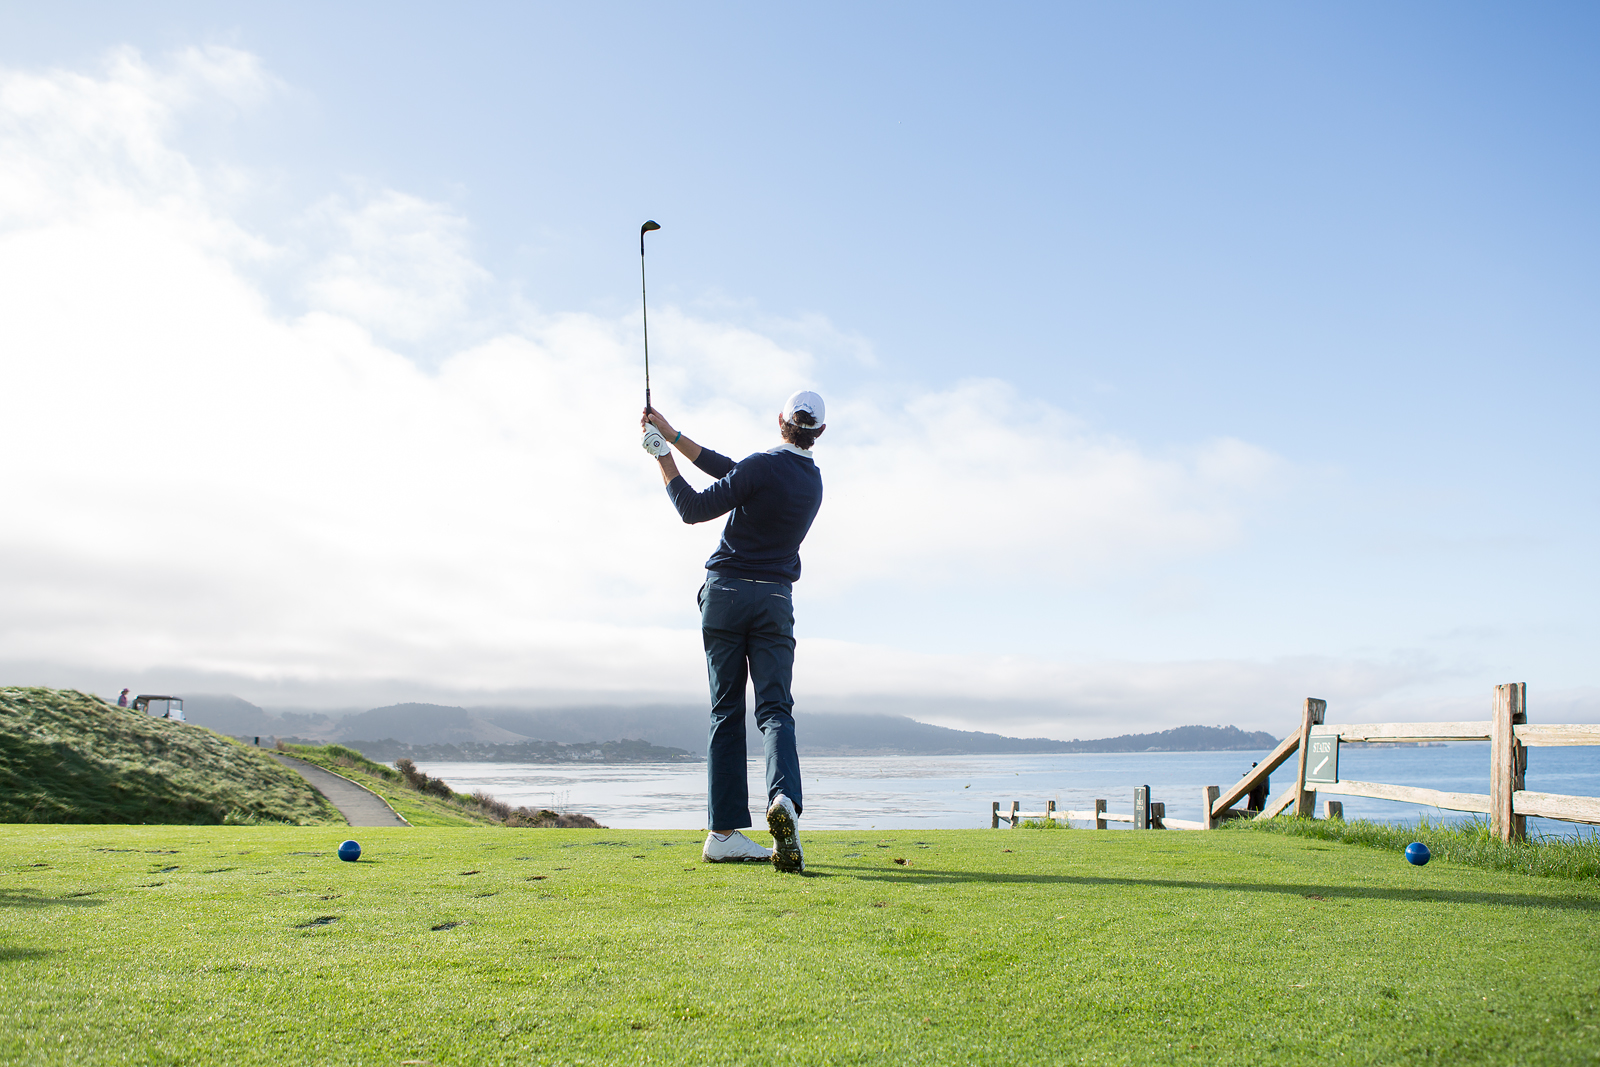 Famous golf hole at Pebble Beach